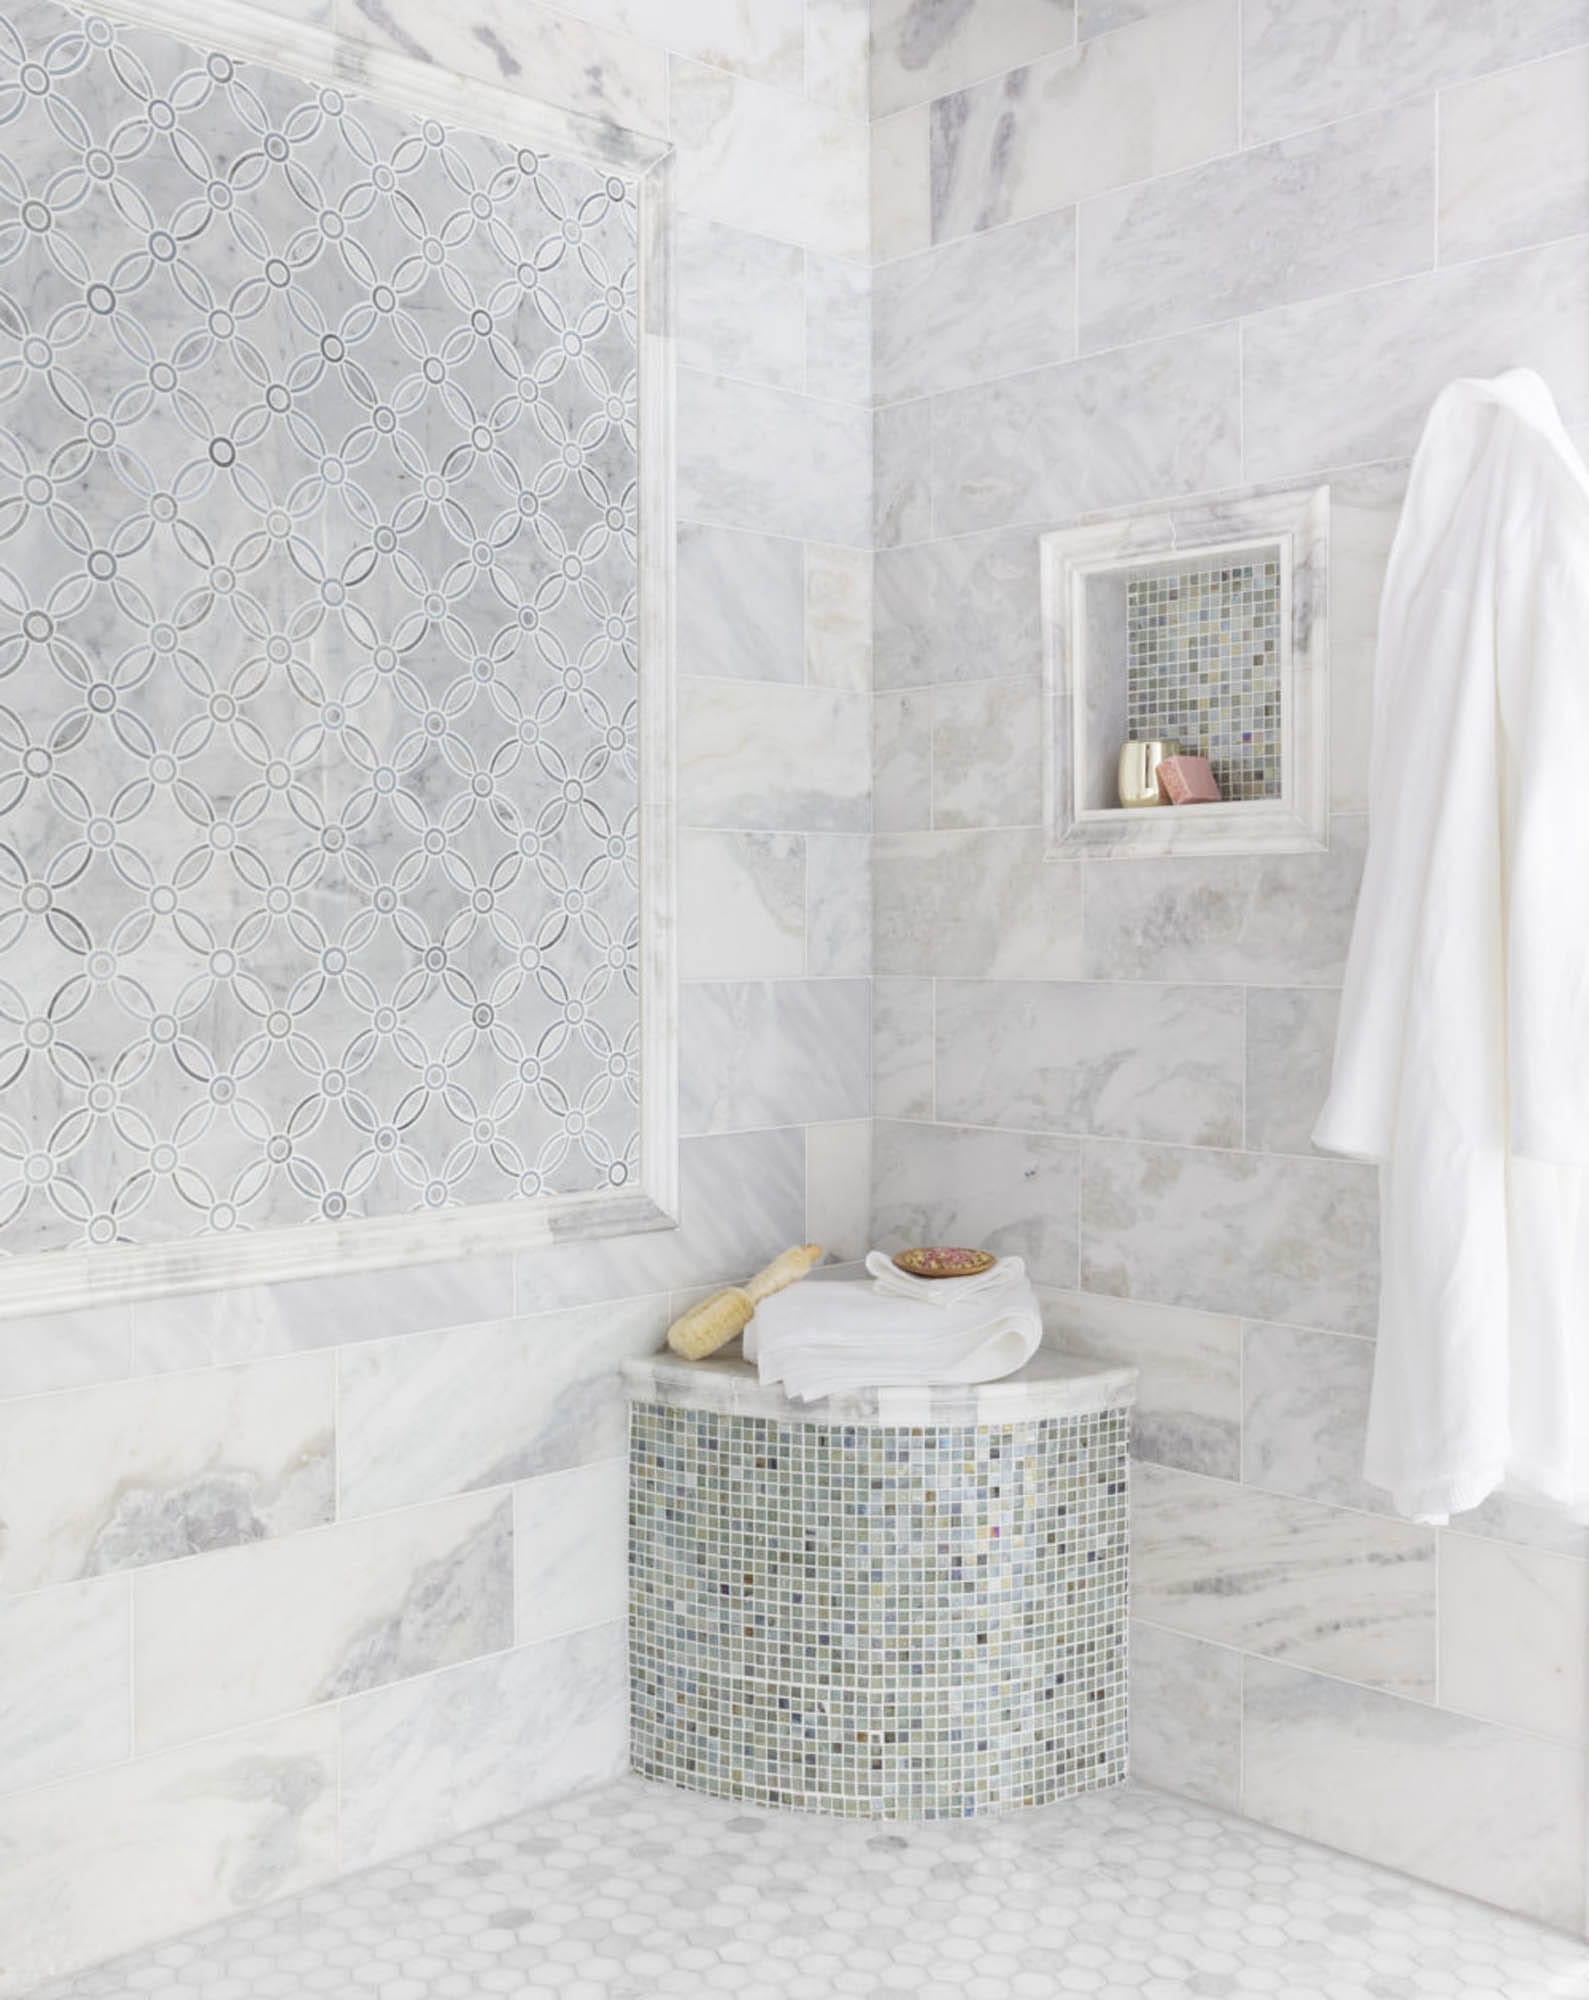 Distinct Designs With Waterjet Mosaics The Tile Shop Blog